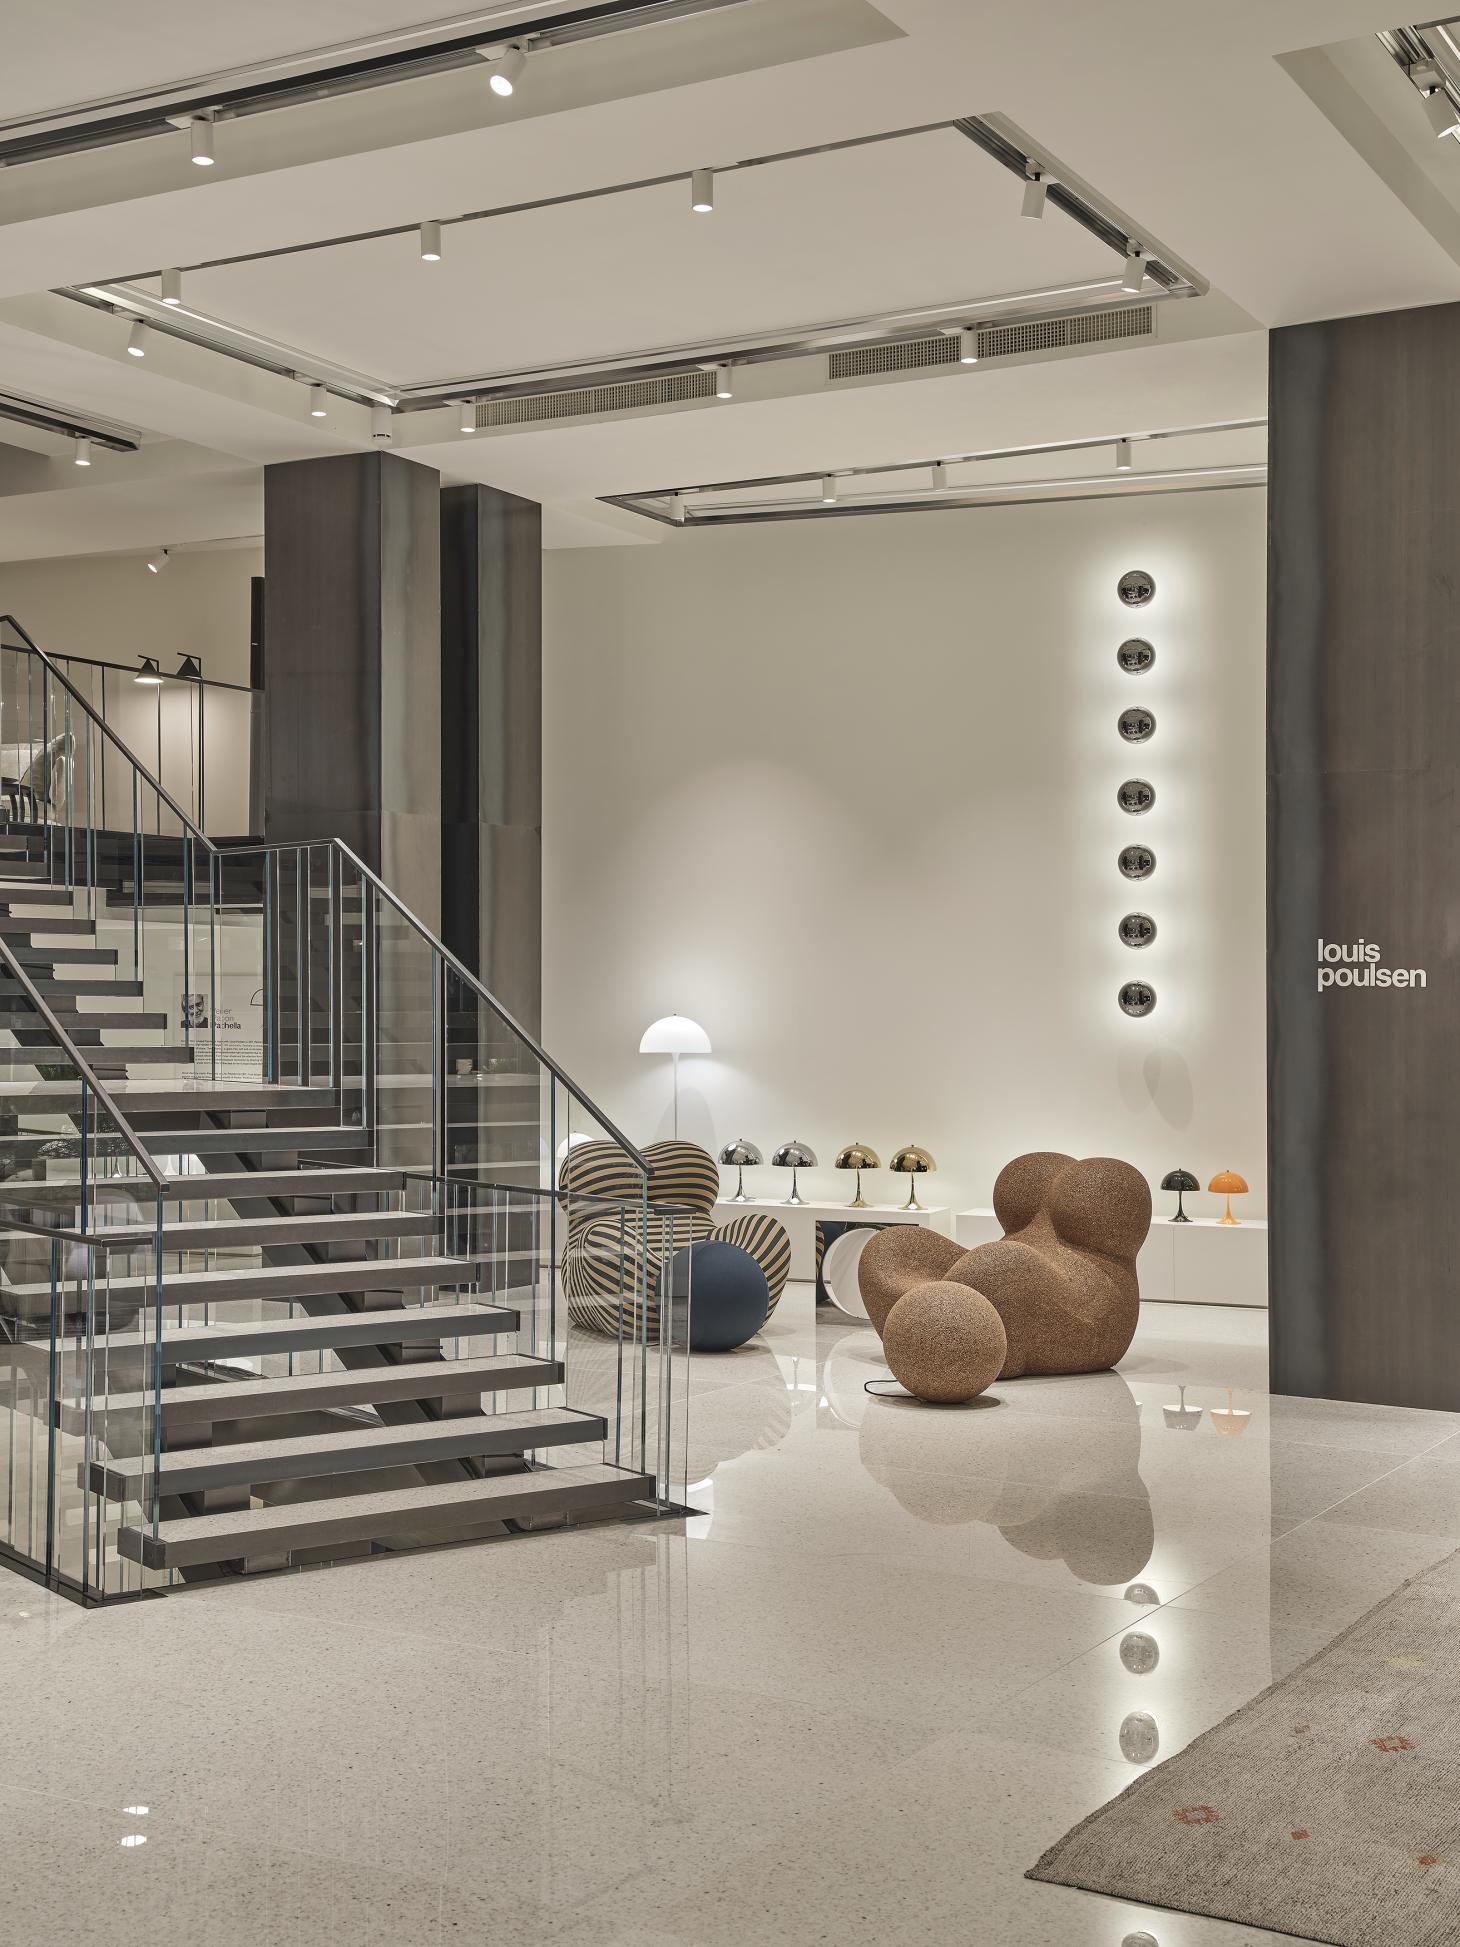 D Studio Milano with staircase leading to the first floor and Gaetano Pesce's armchairs for B&B Italia on one side